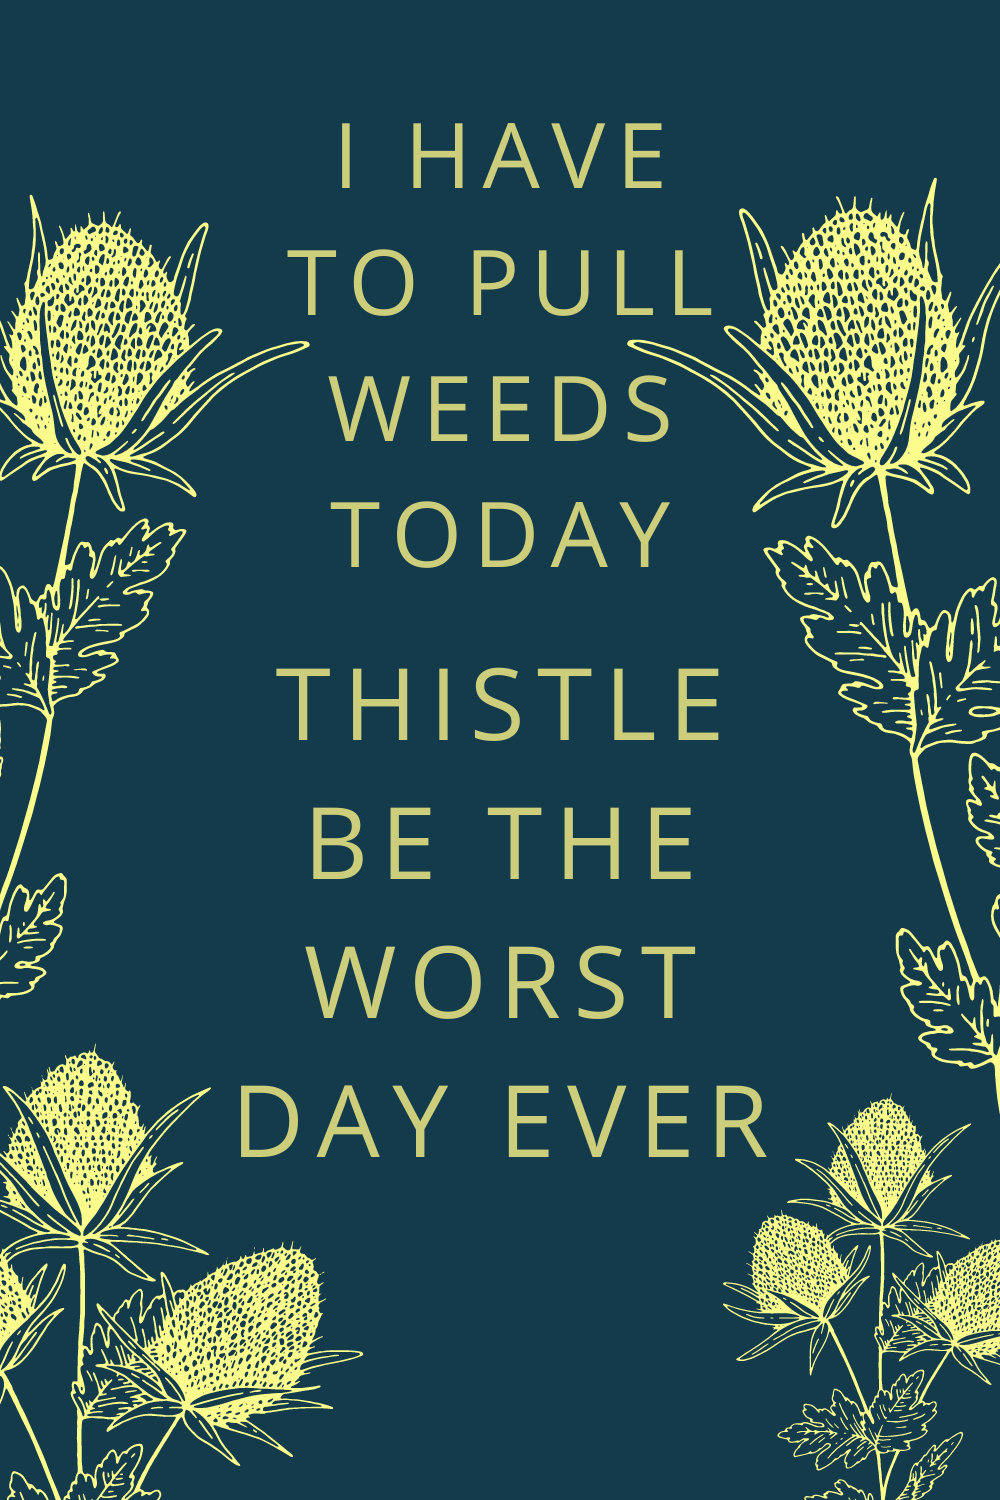 Pun Puns Wordplay I Have To Pull Weeds Today Thistle Be The Worst Day Ever Lol Bee Book Book Blog Book Humor